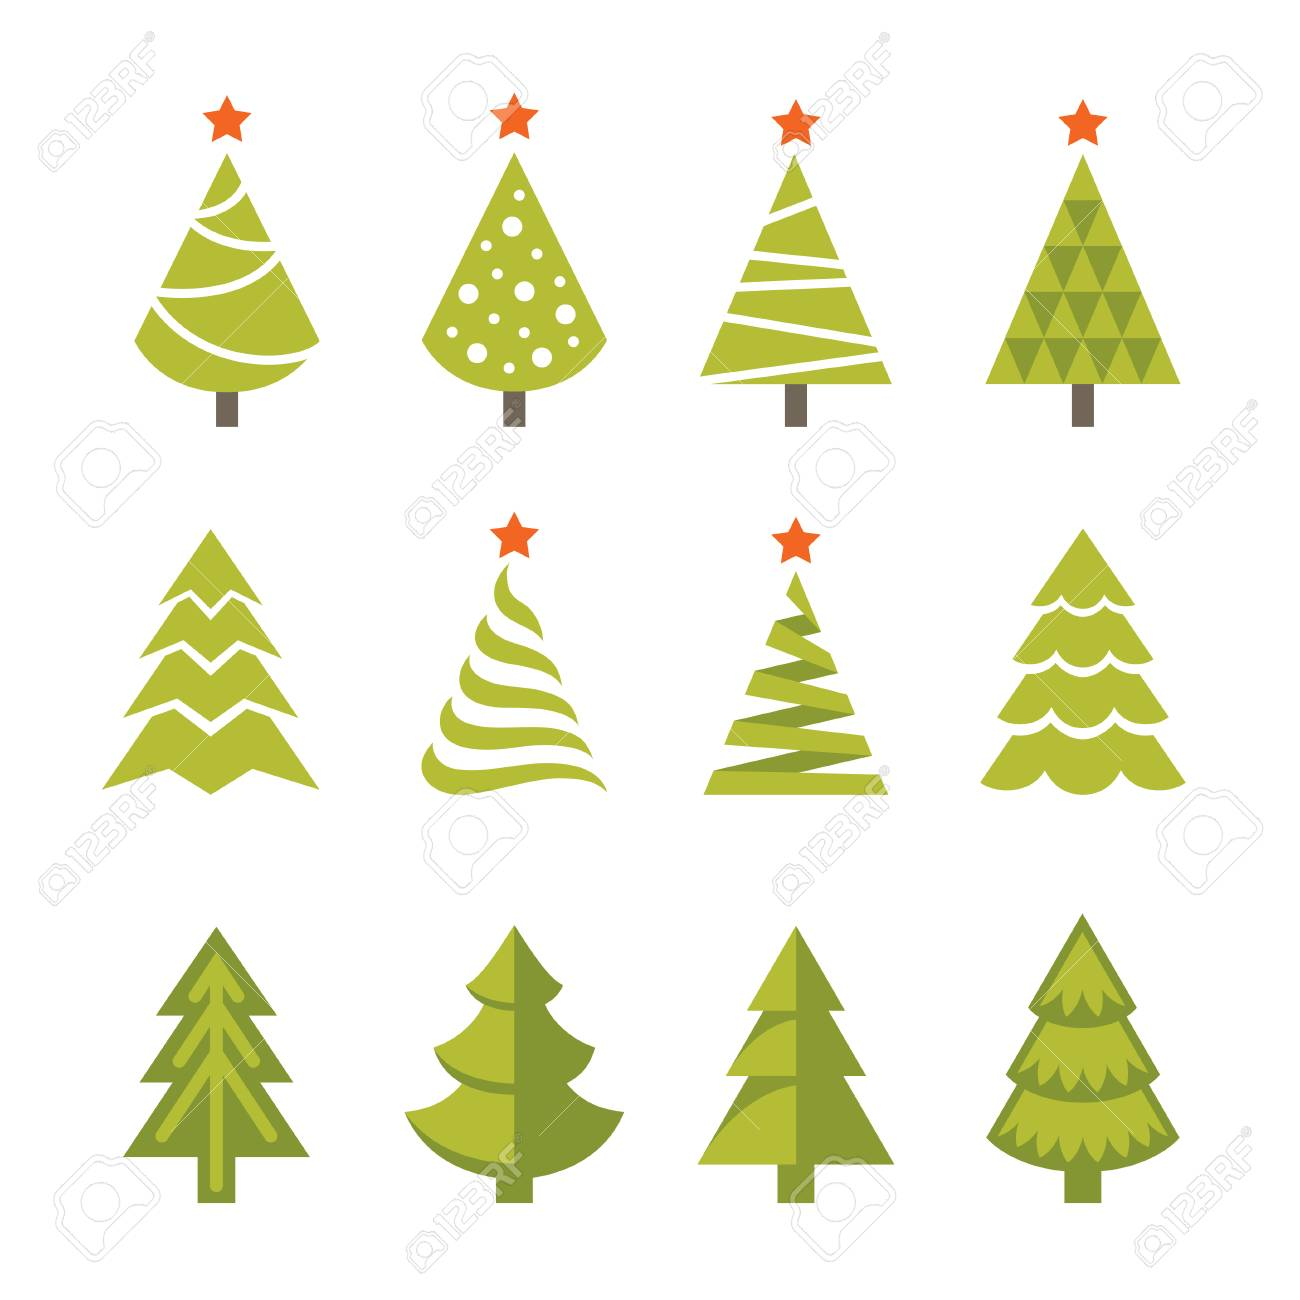 Set Of Bright Green Christmas Fir And Spruce Trees Icons Symbols